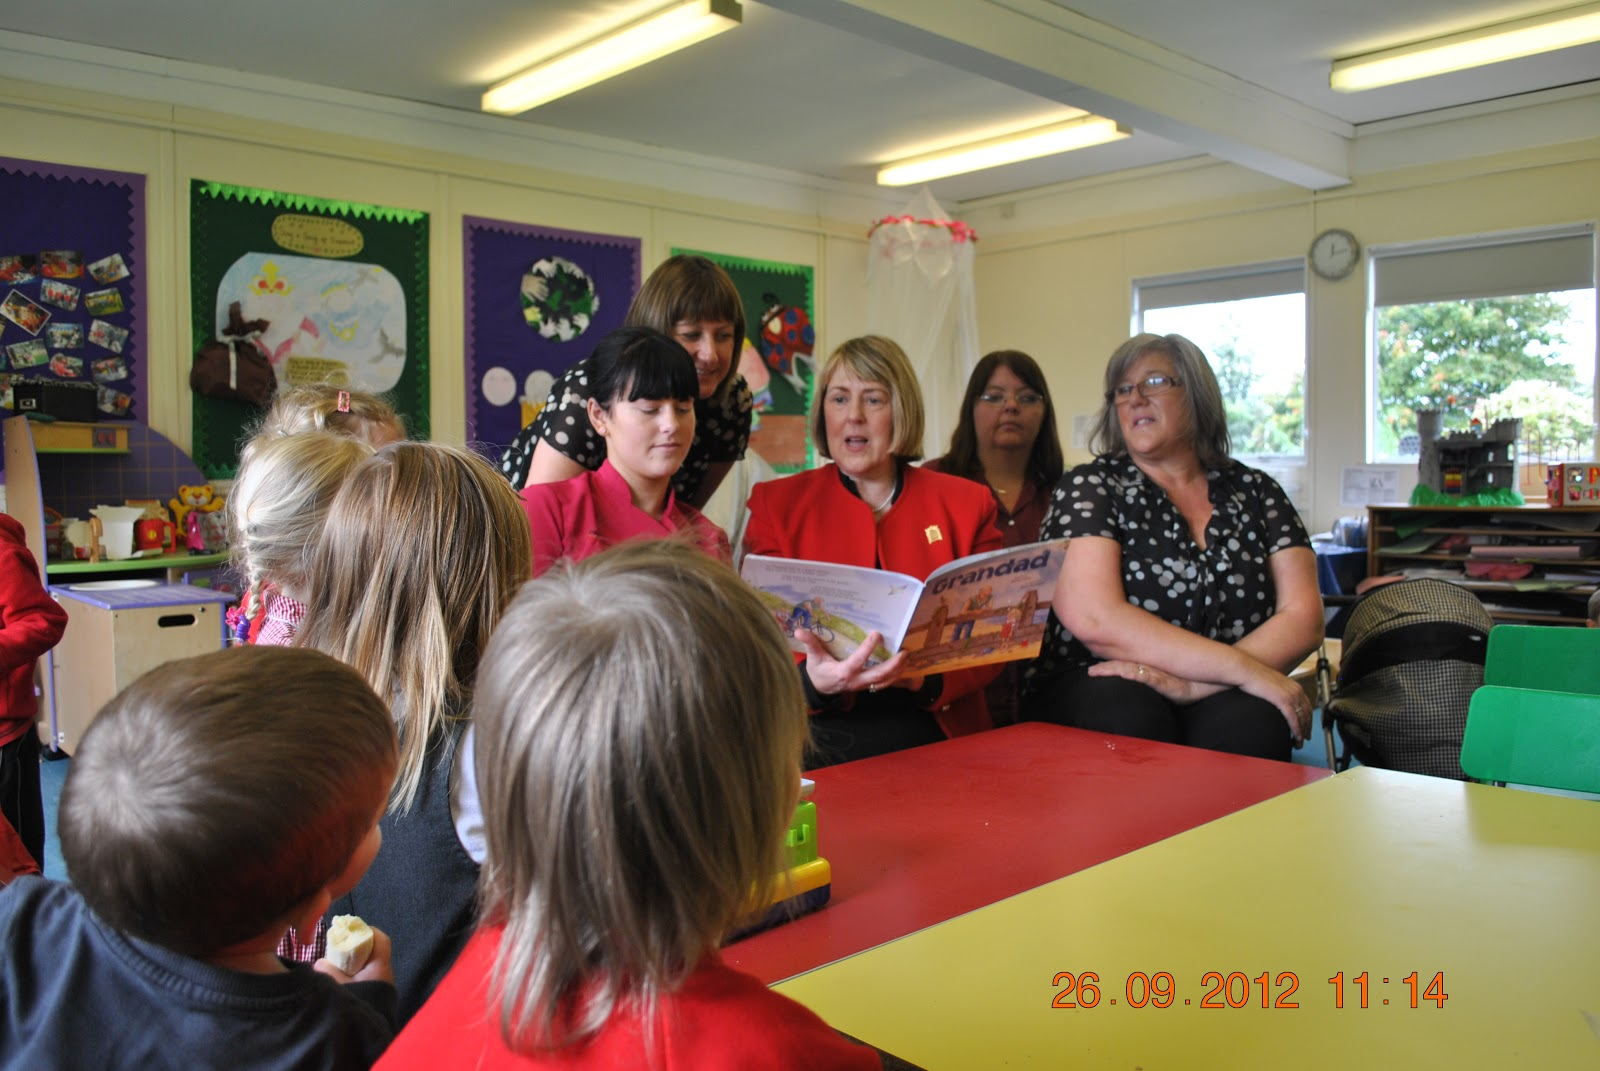 Fiona bruce mp press releases archive excalibur play and learn pre school visit for Heeley swimming pool opening times